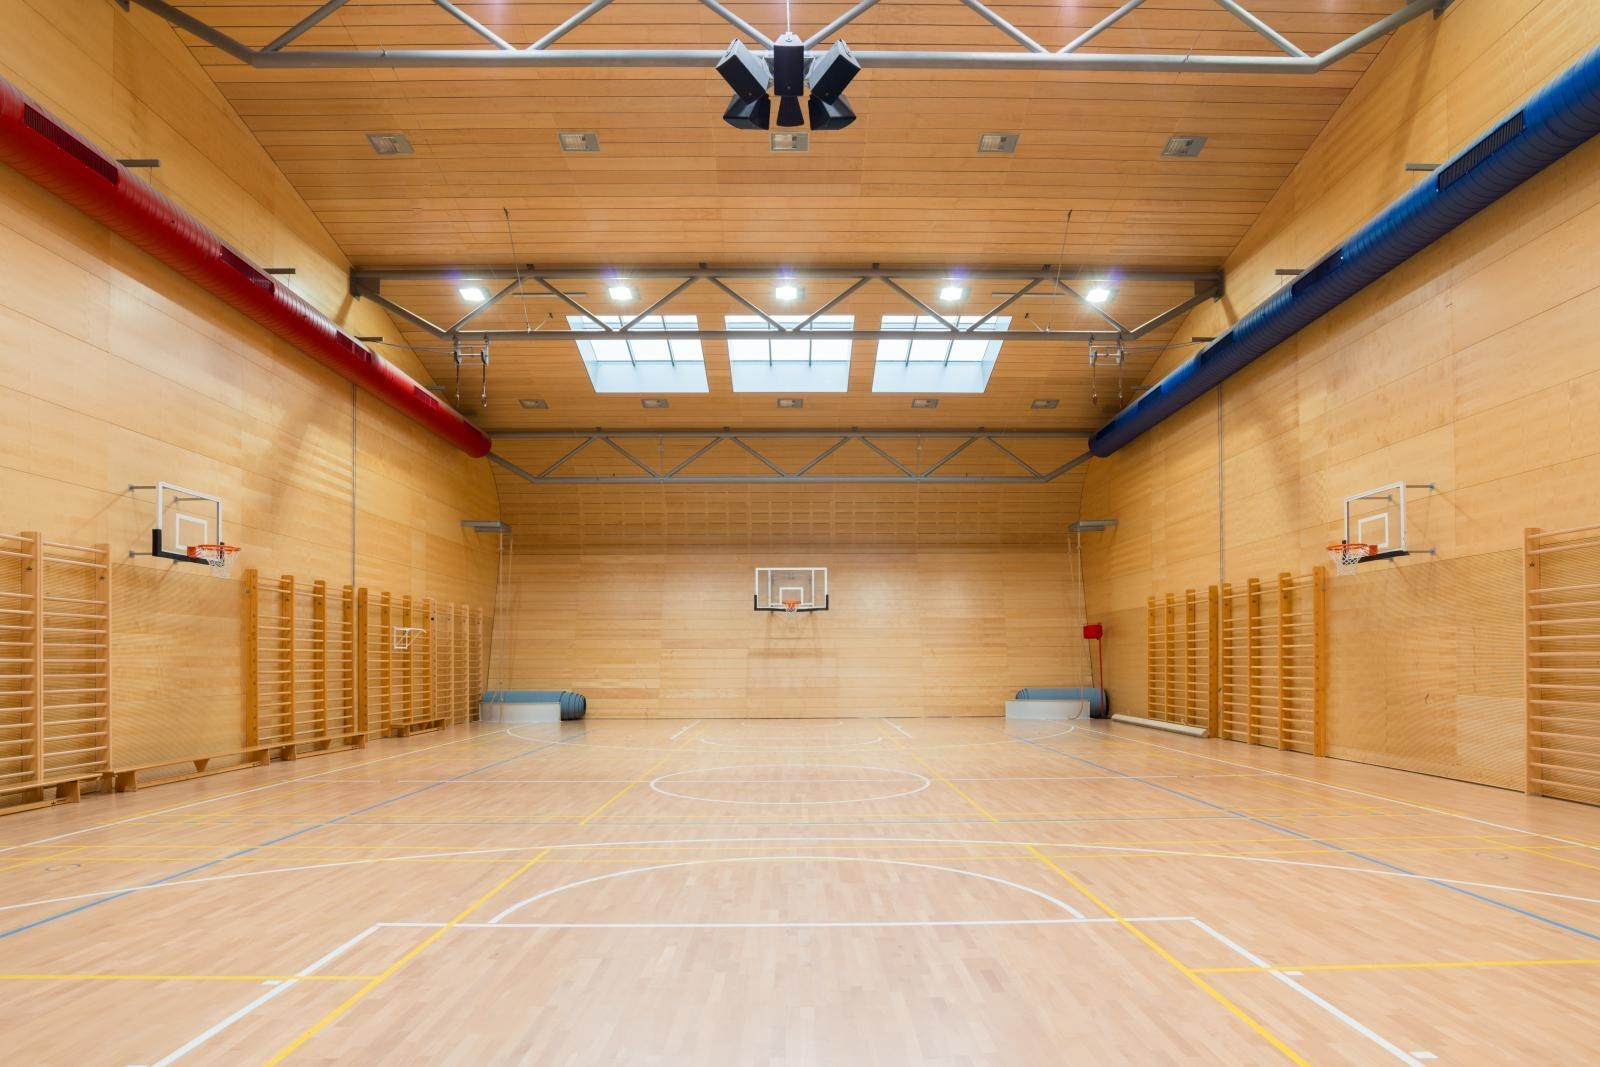 Gyms of Faculty of Sports Studies, MU, Brno